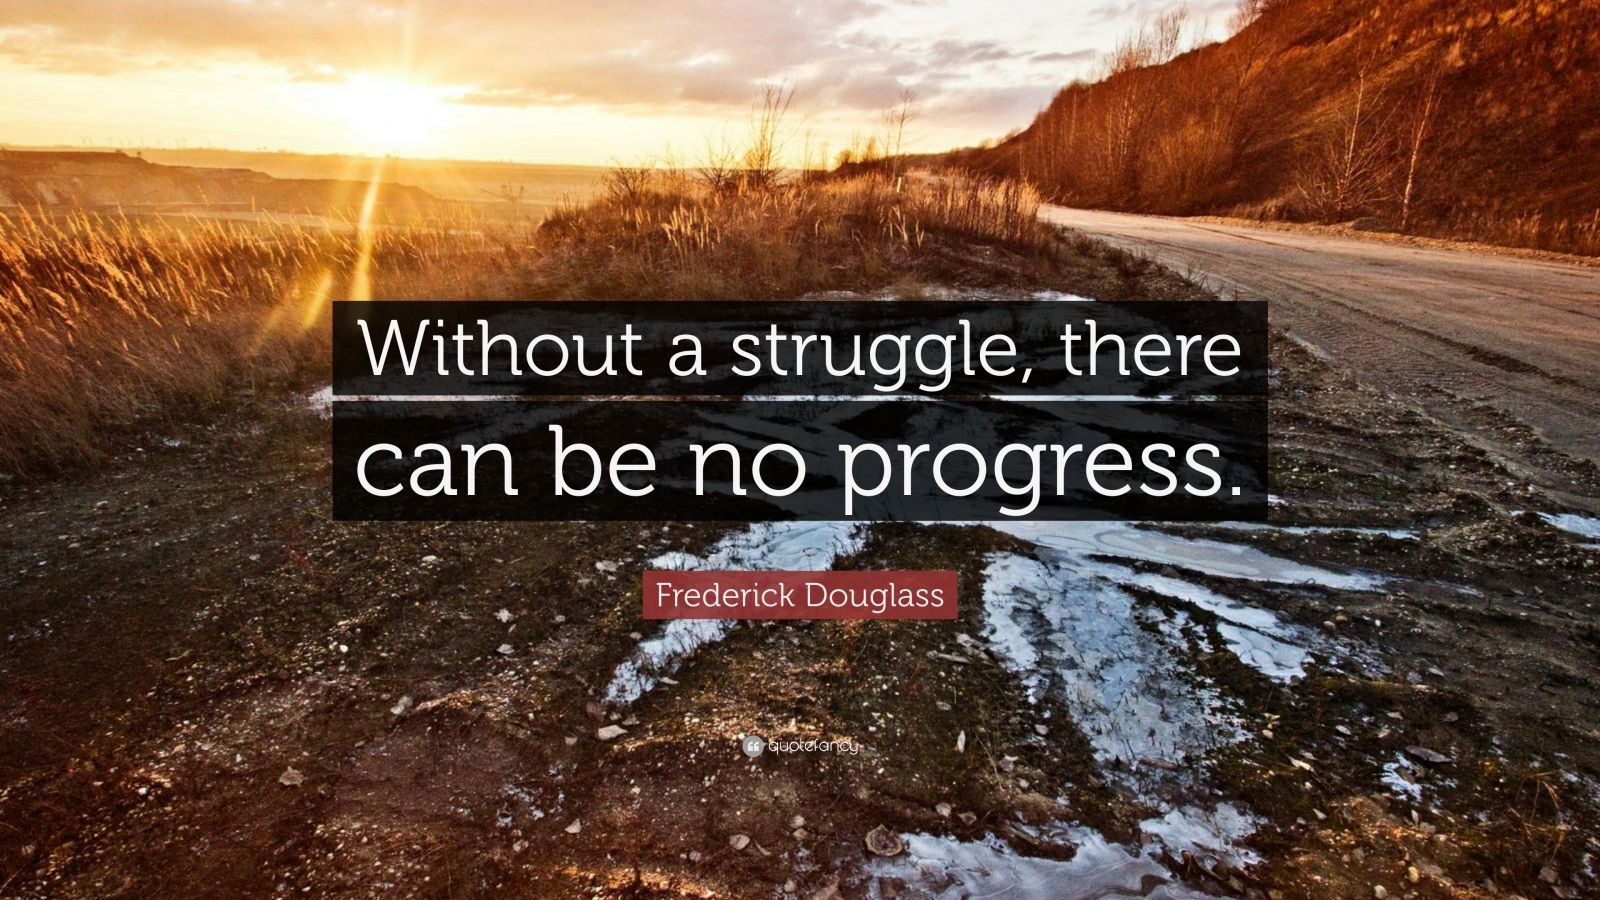 frederick douglass quotes quotefancy frederick douglass quote out a struggle there can be no progress